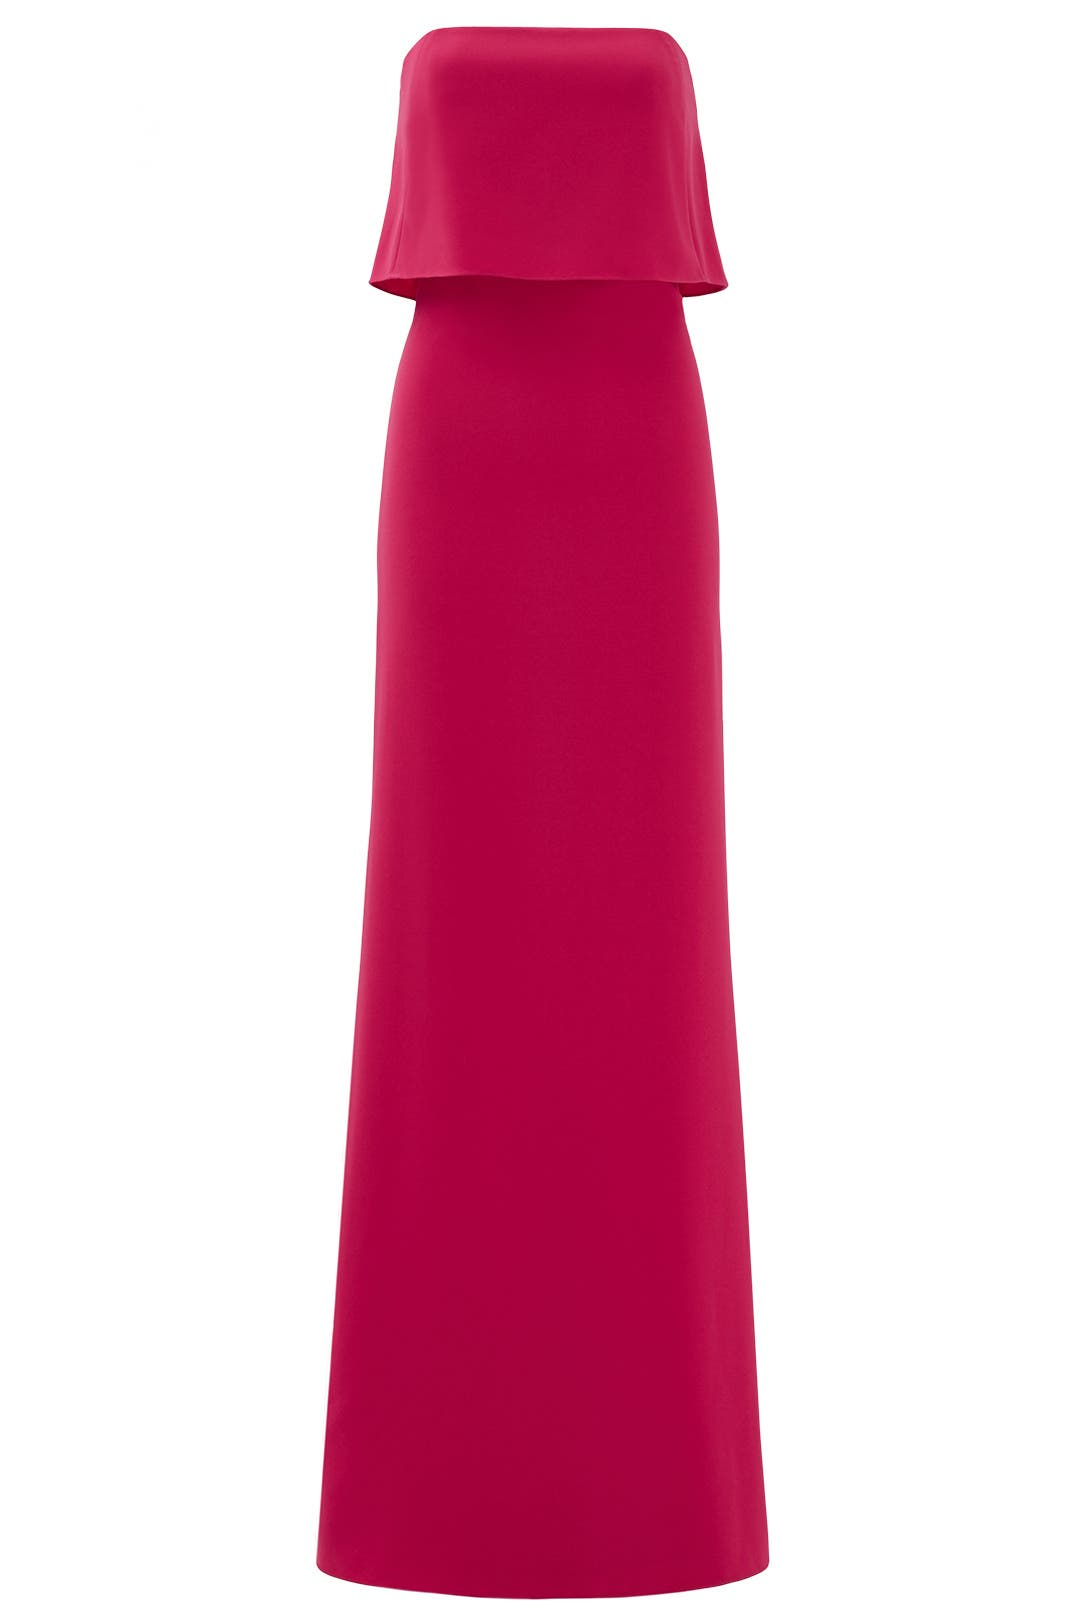 Rent the Runway Halston Heritage Pink Gown